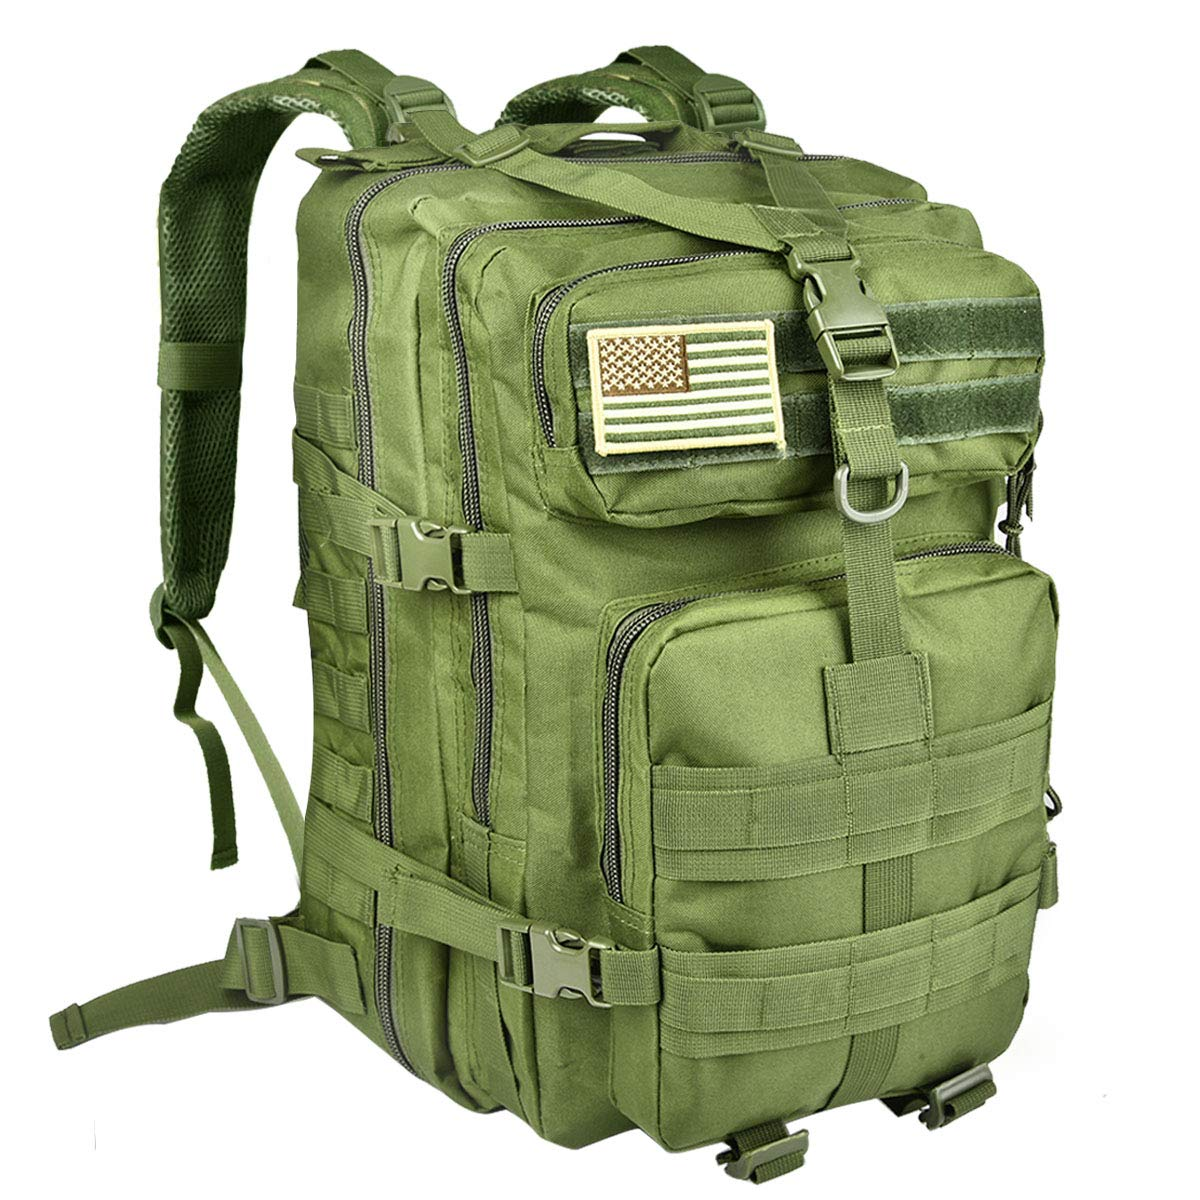 NOOLA 40L Military Tactical Backpack 3 Day Pack Molle Bag Army Rucksack Green by NOOLA